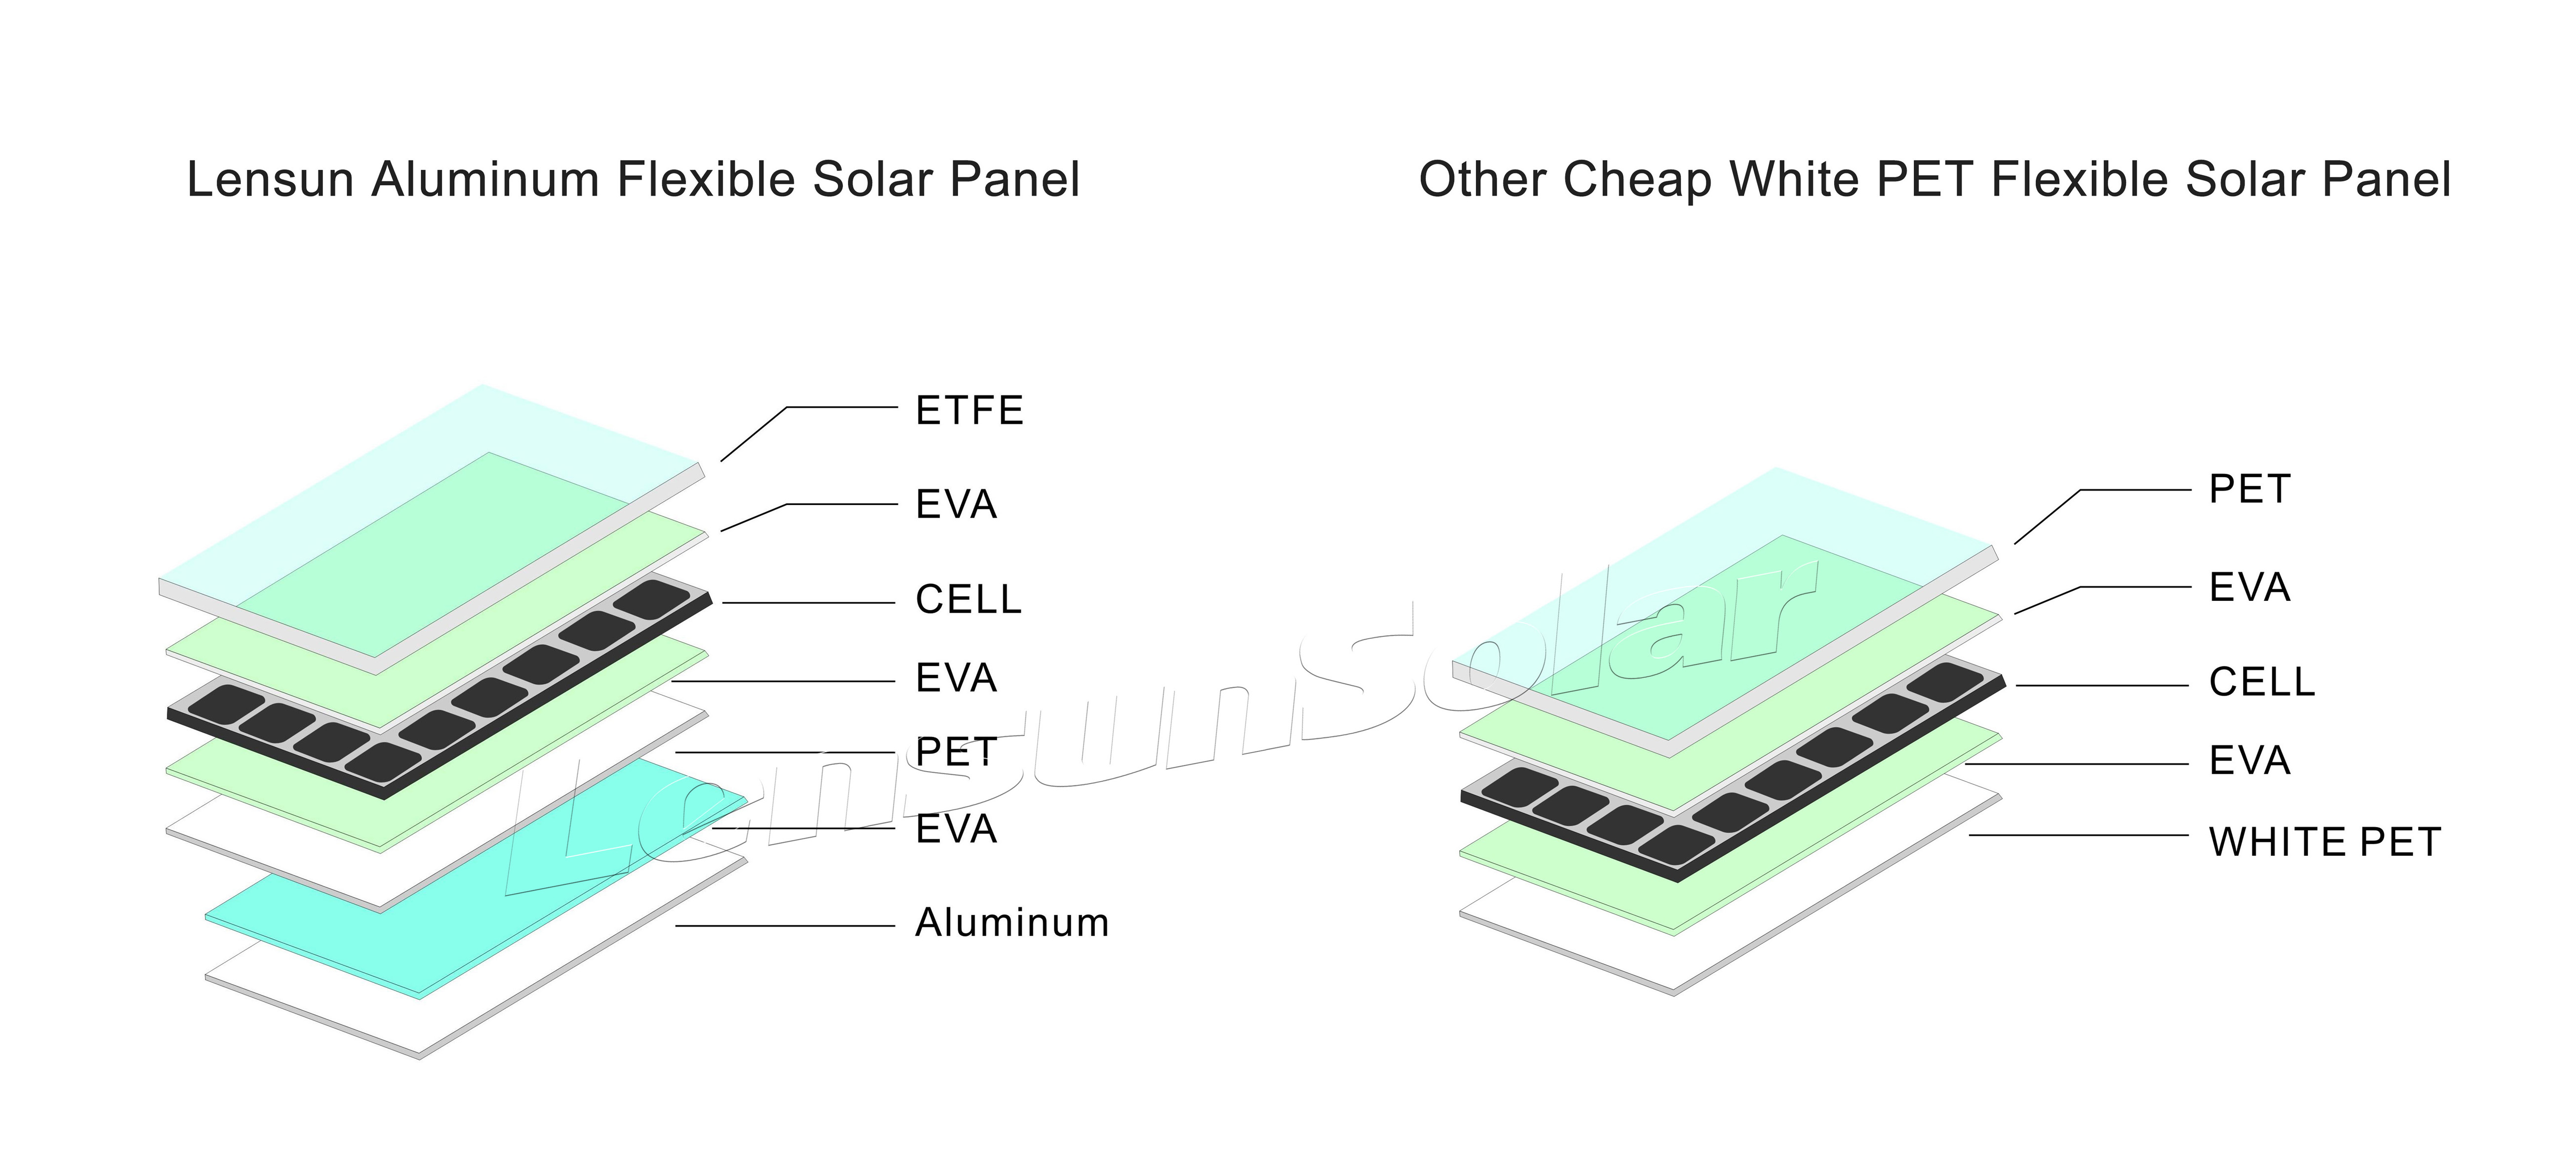 Lensun 174 20w 12v Flexible Solar Panel Etfe Quality Not